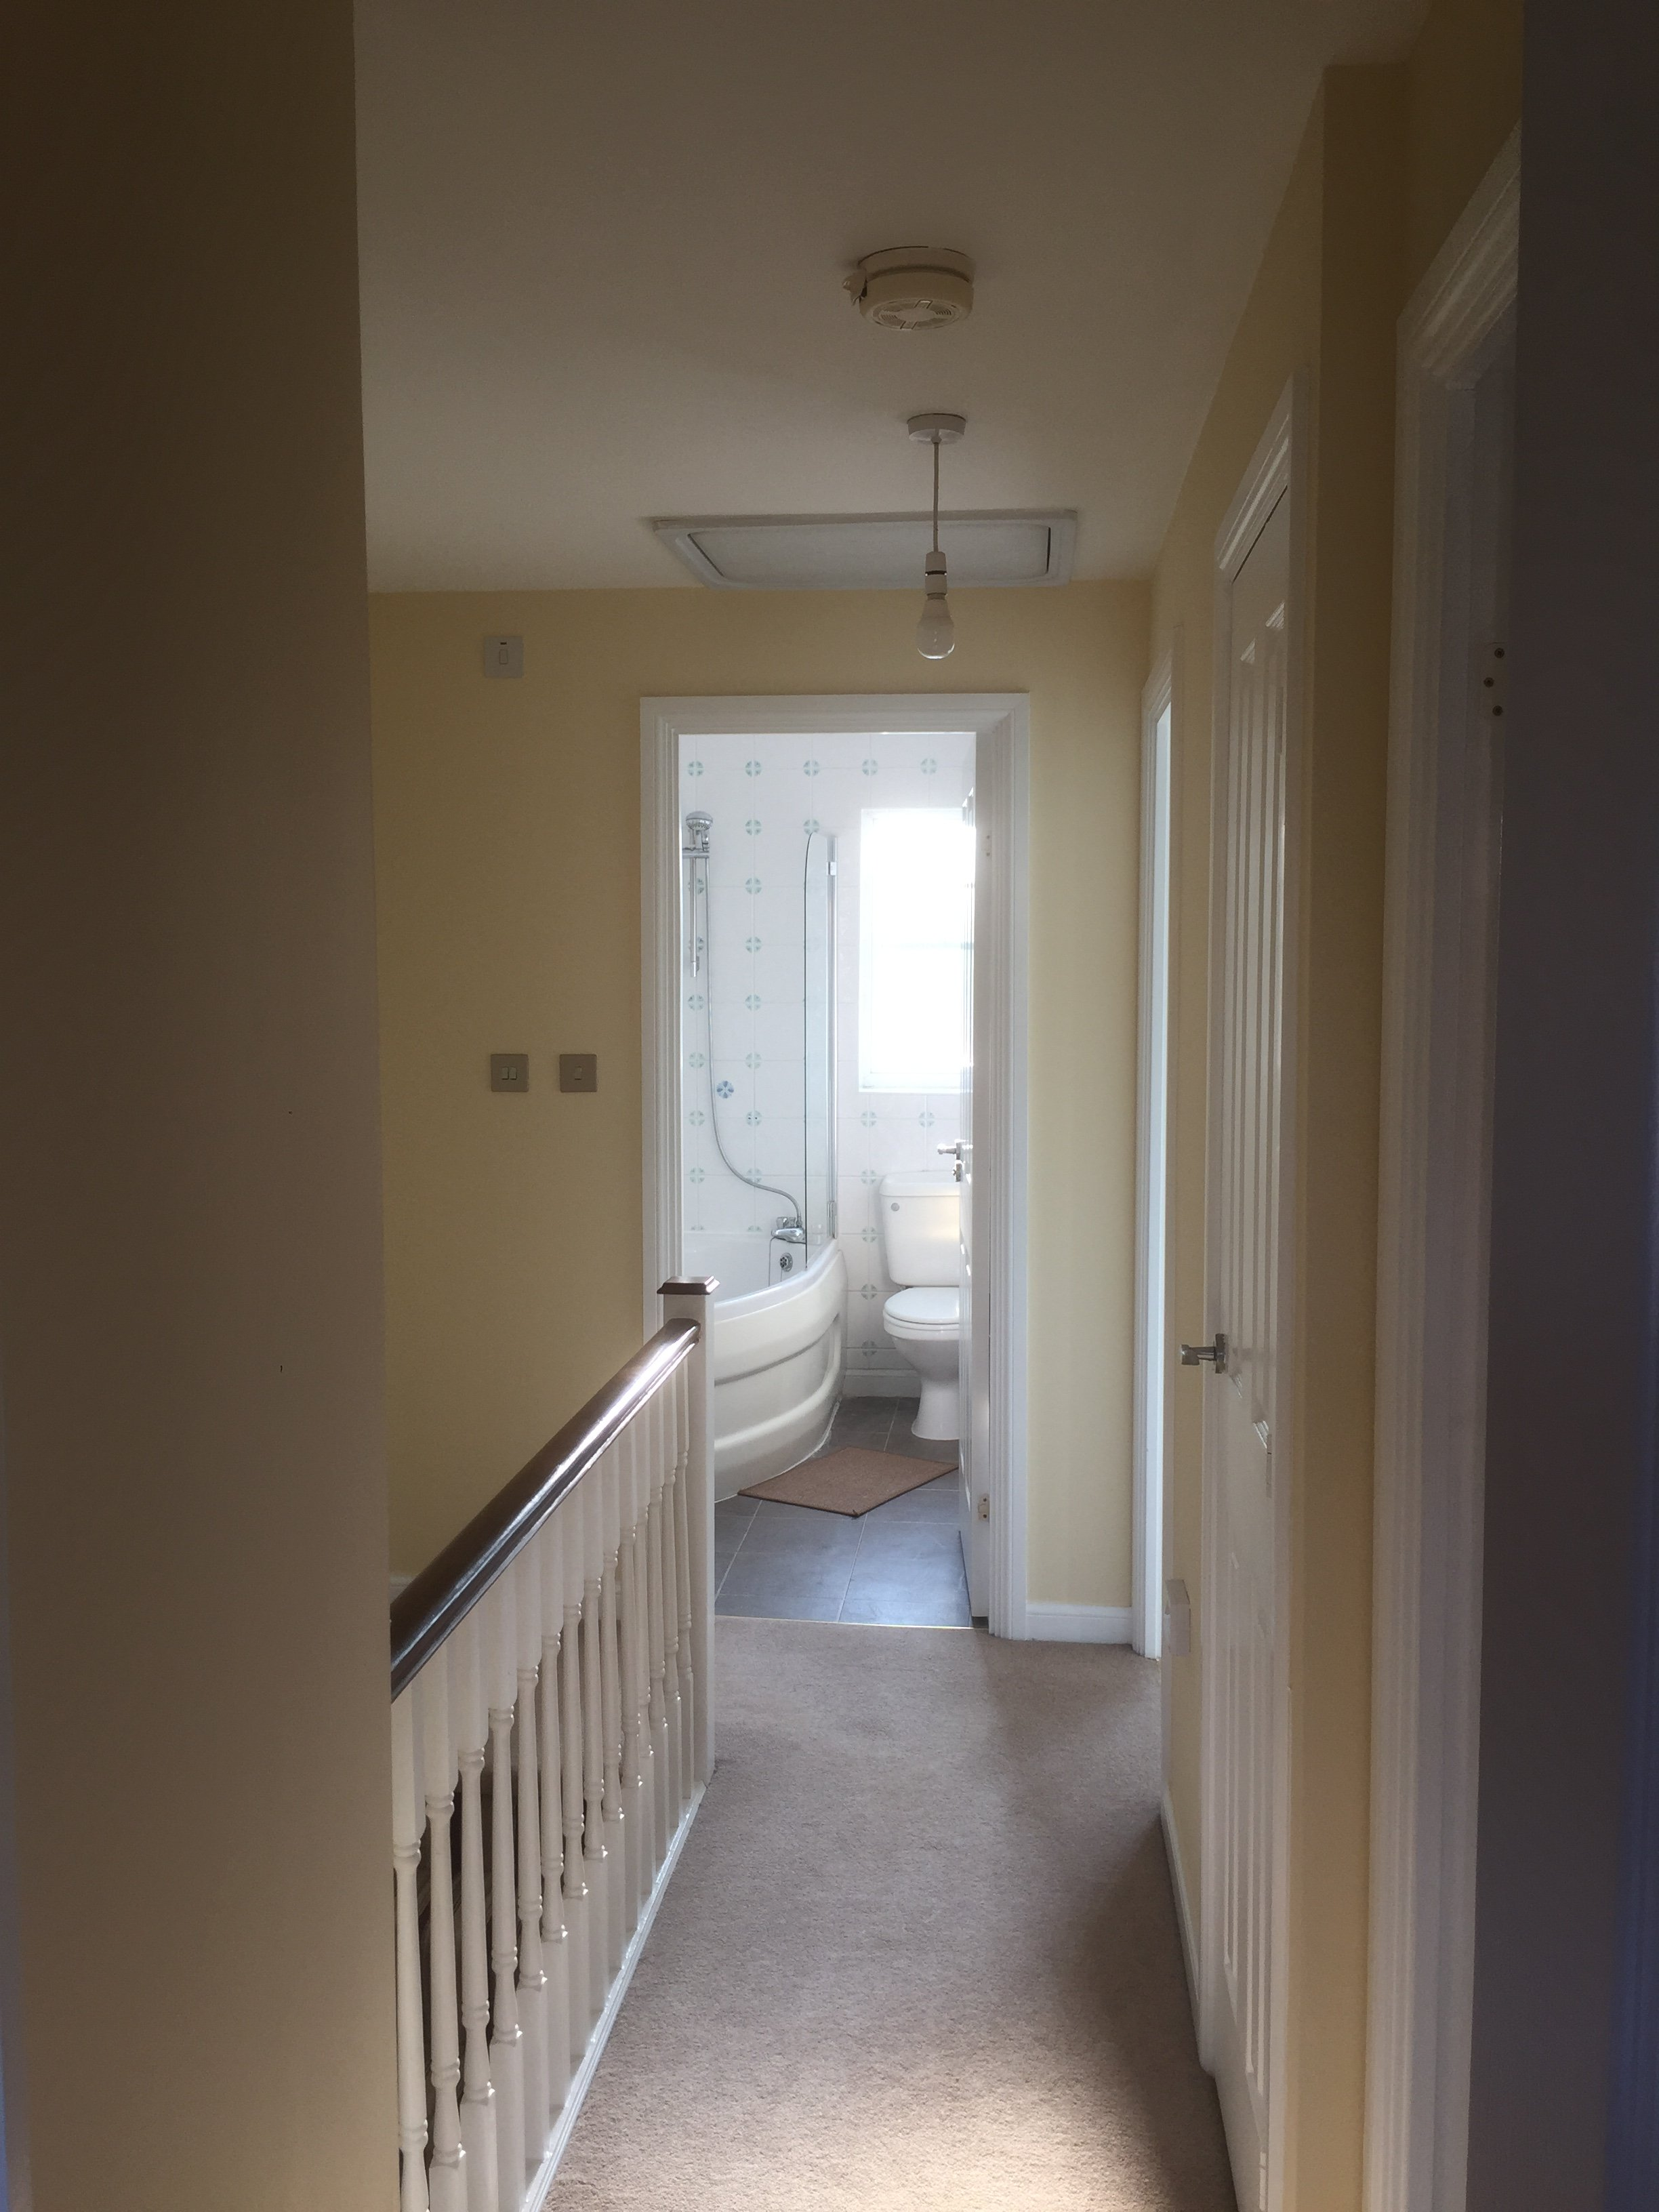 painting and decorating, amersham